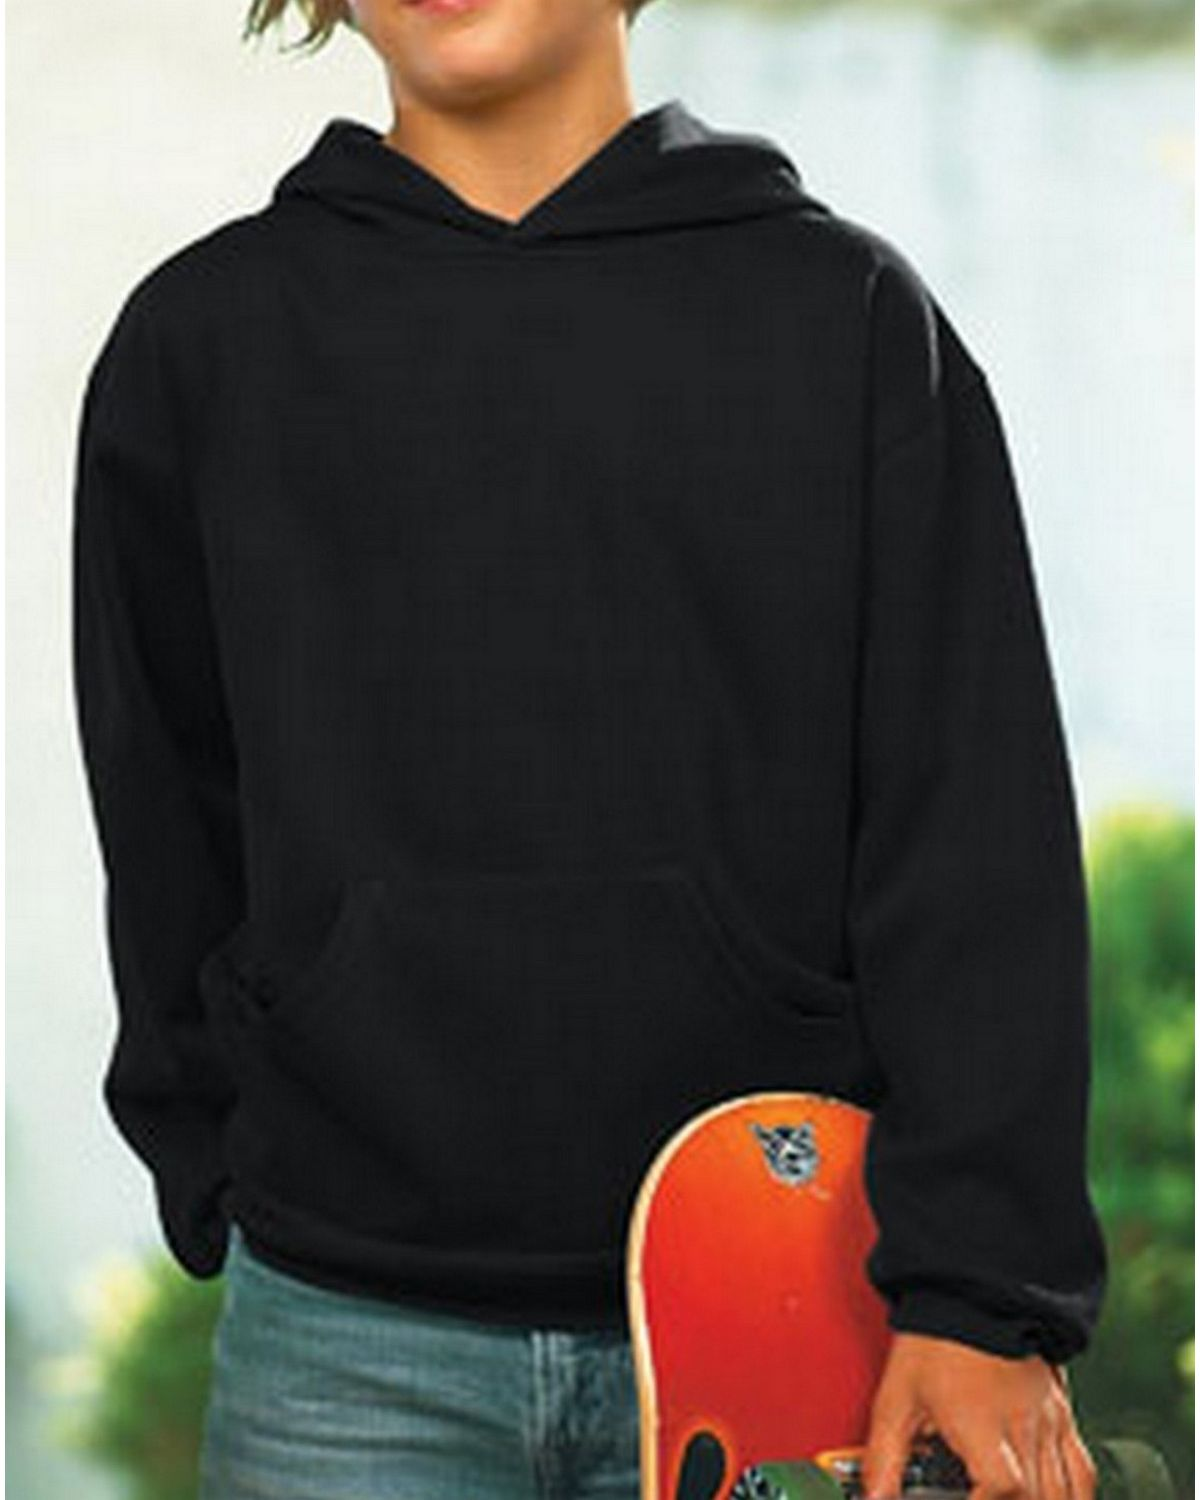 LAT 2296 Youth Fleece Hooded Pullover Sweatshirt - Black - XL 2296